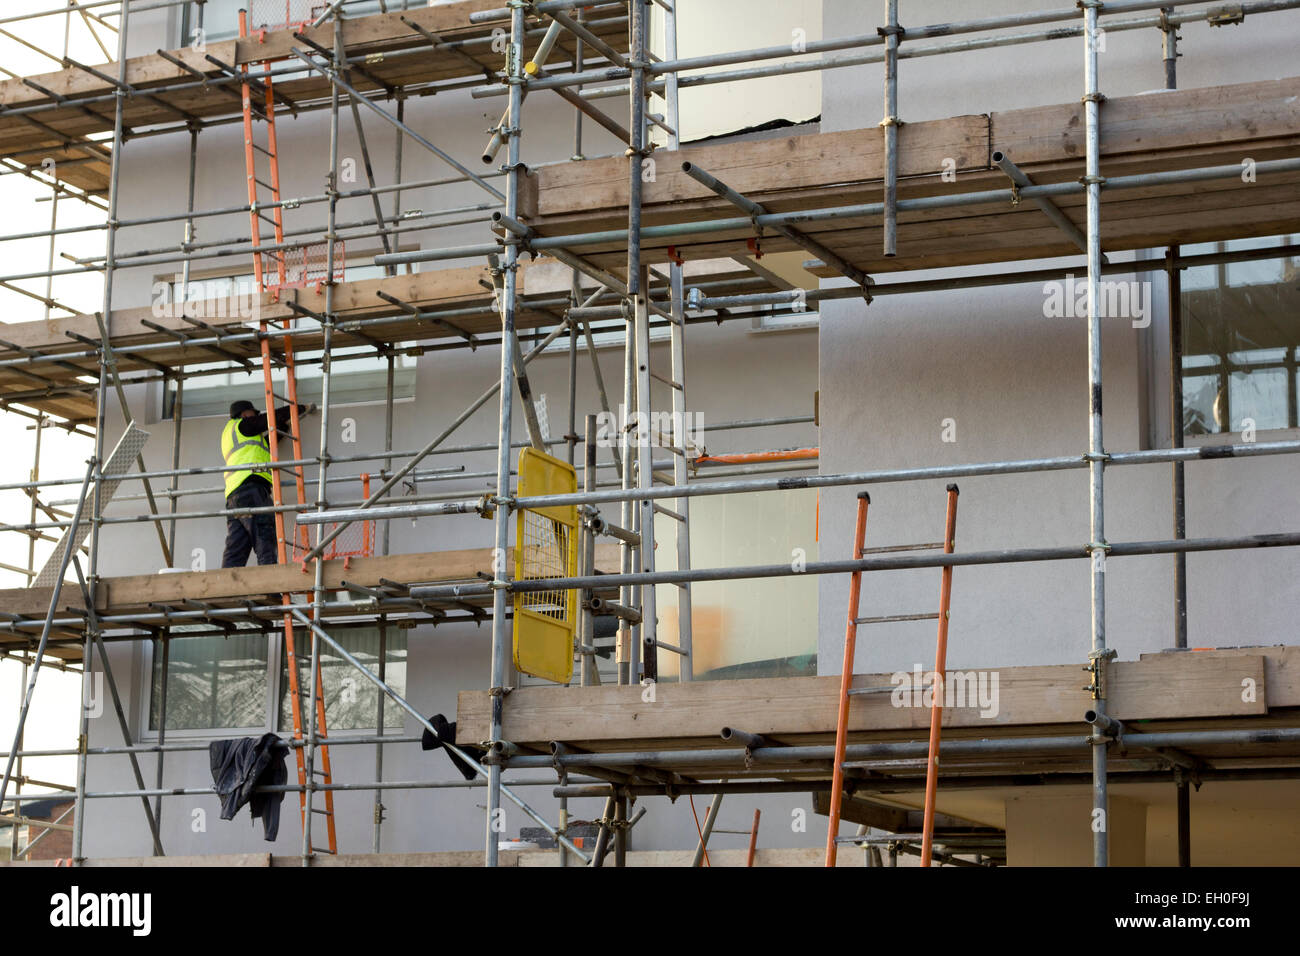 Working On Scaffolding : Man working on scaffolding block of flats building